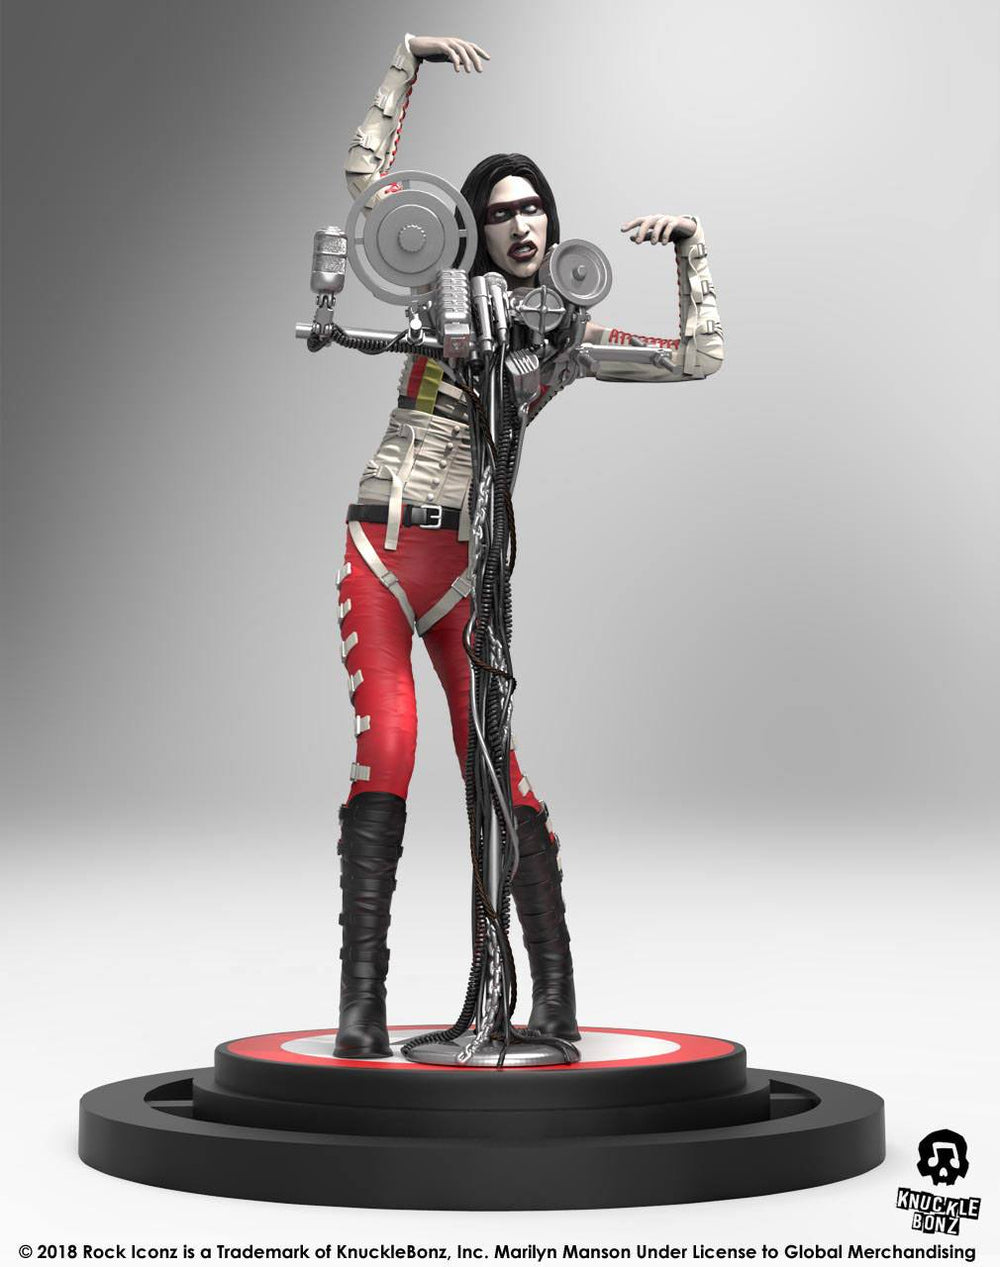 Knucklebonz Marilyn Manson Rock Iconz Statue